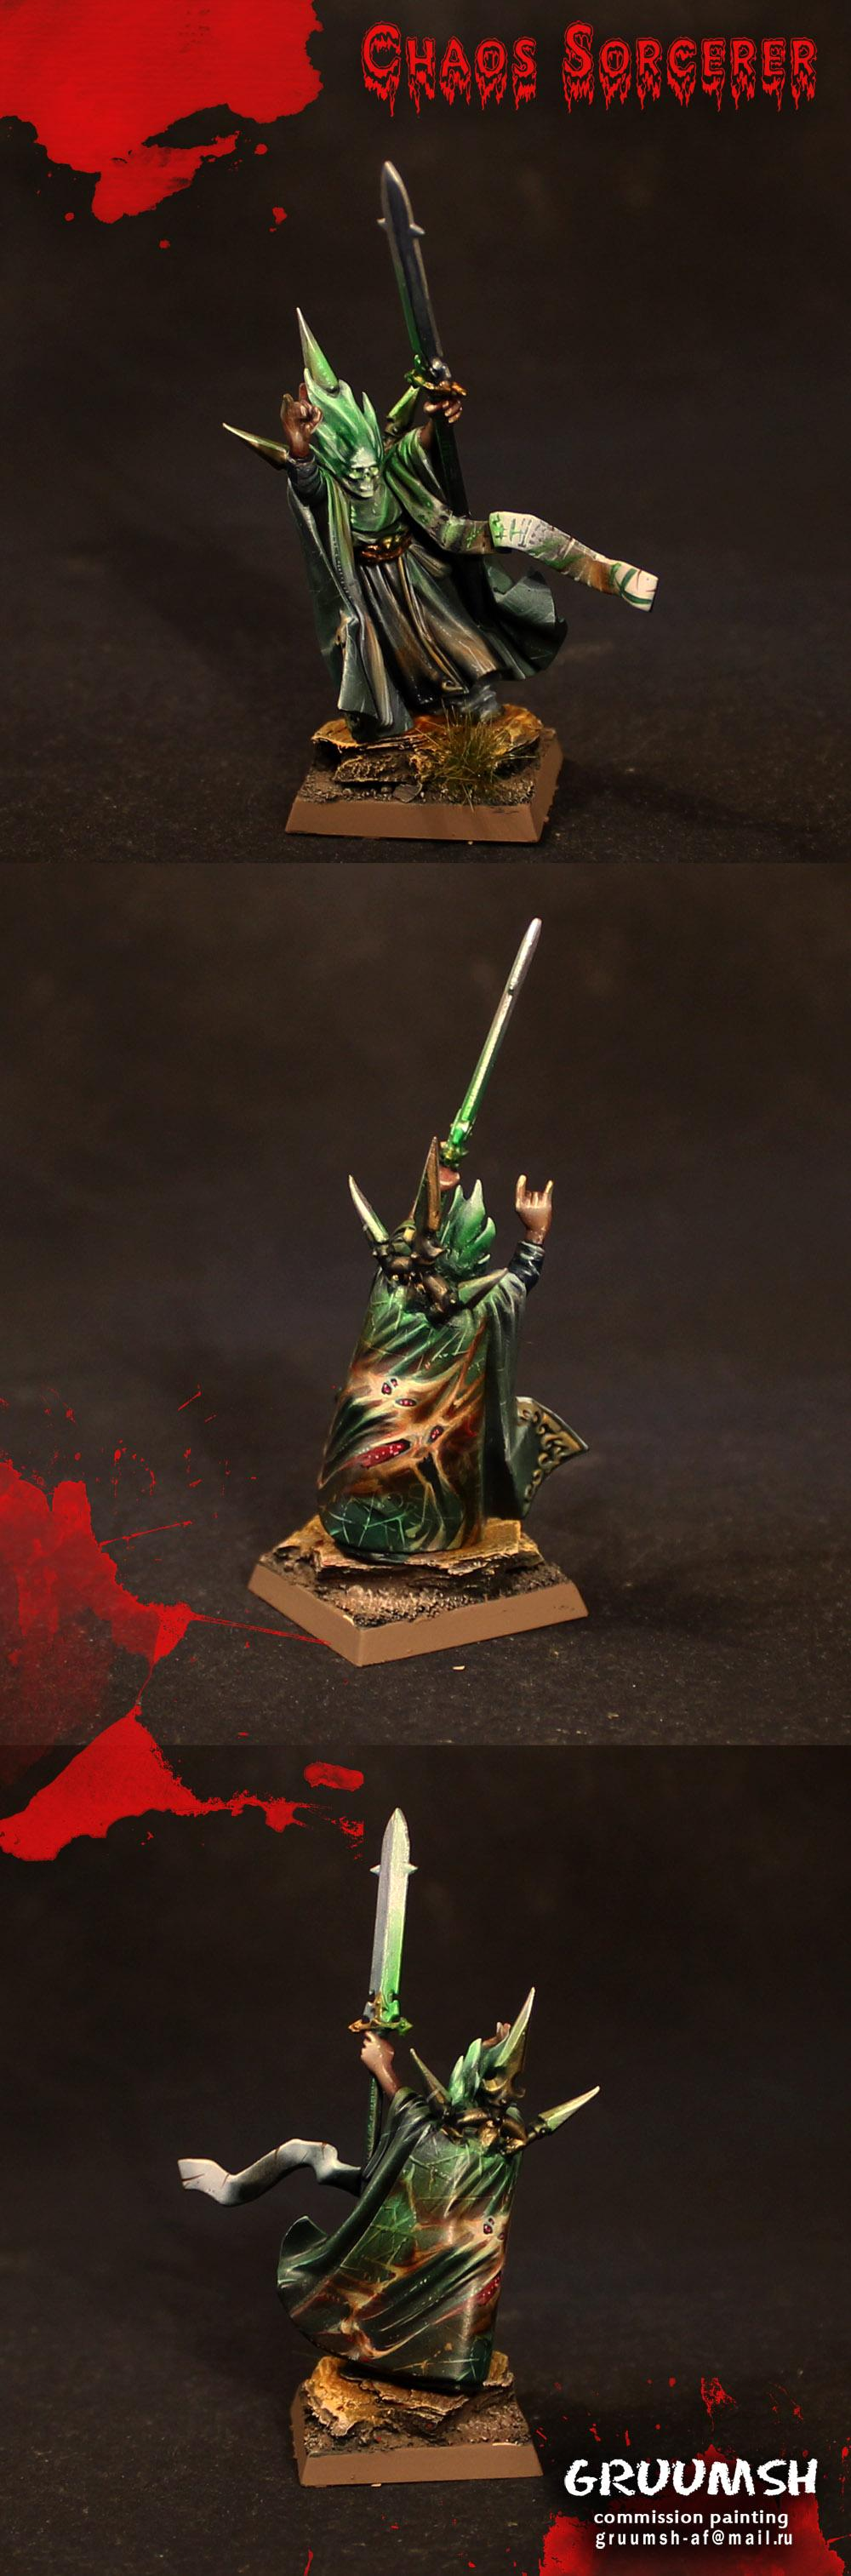 Chaos, Commision, Pro-painted, Sorcerer